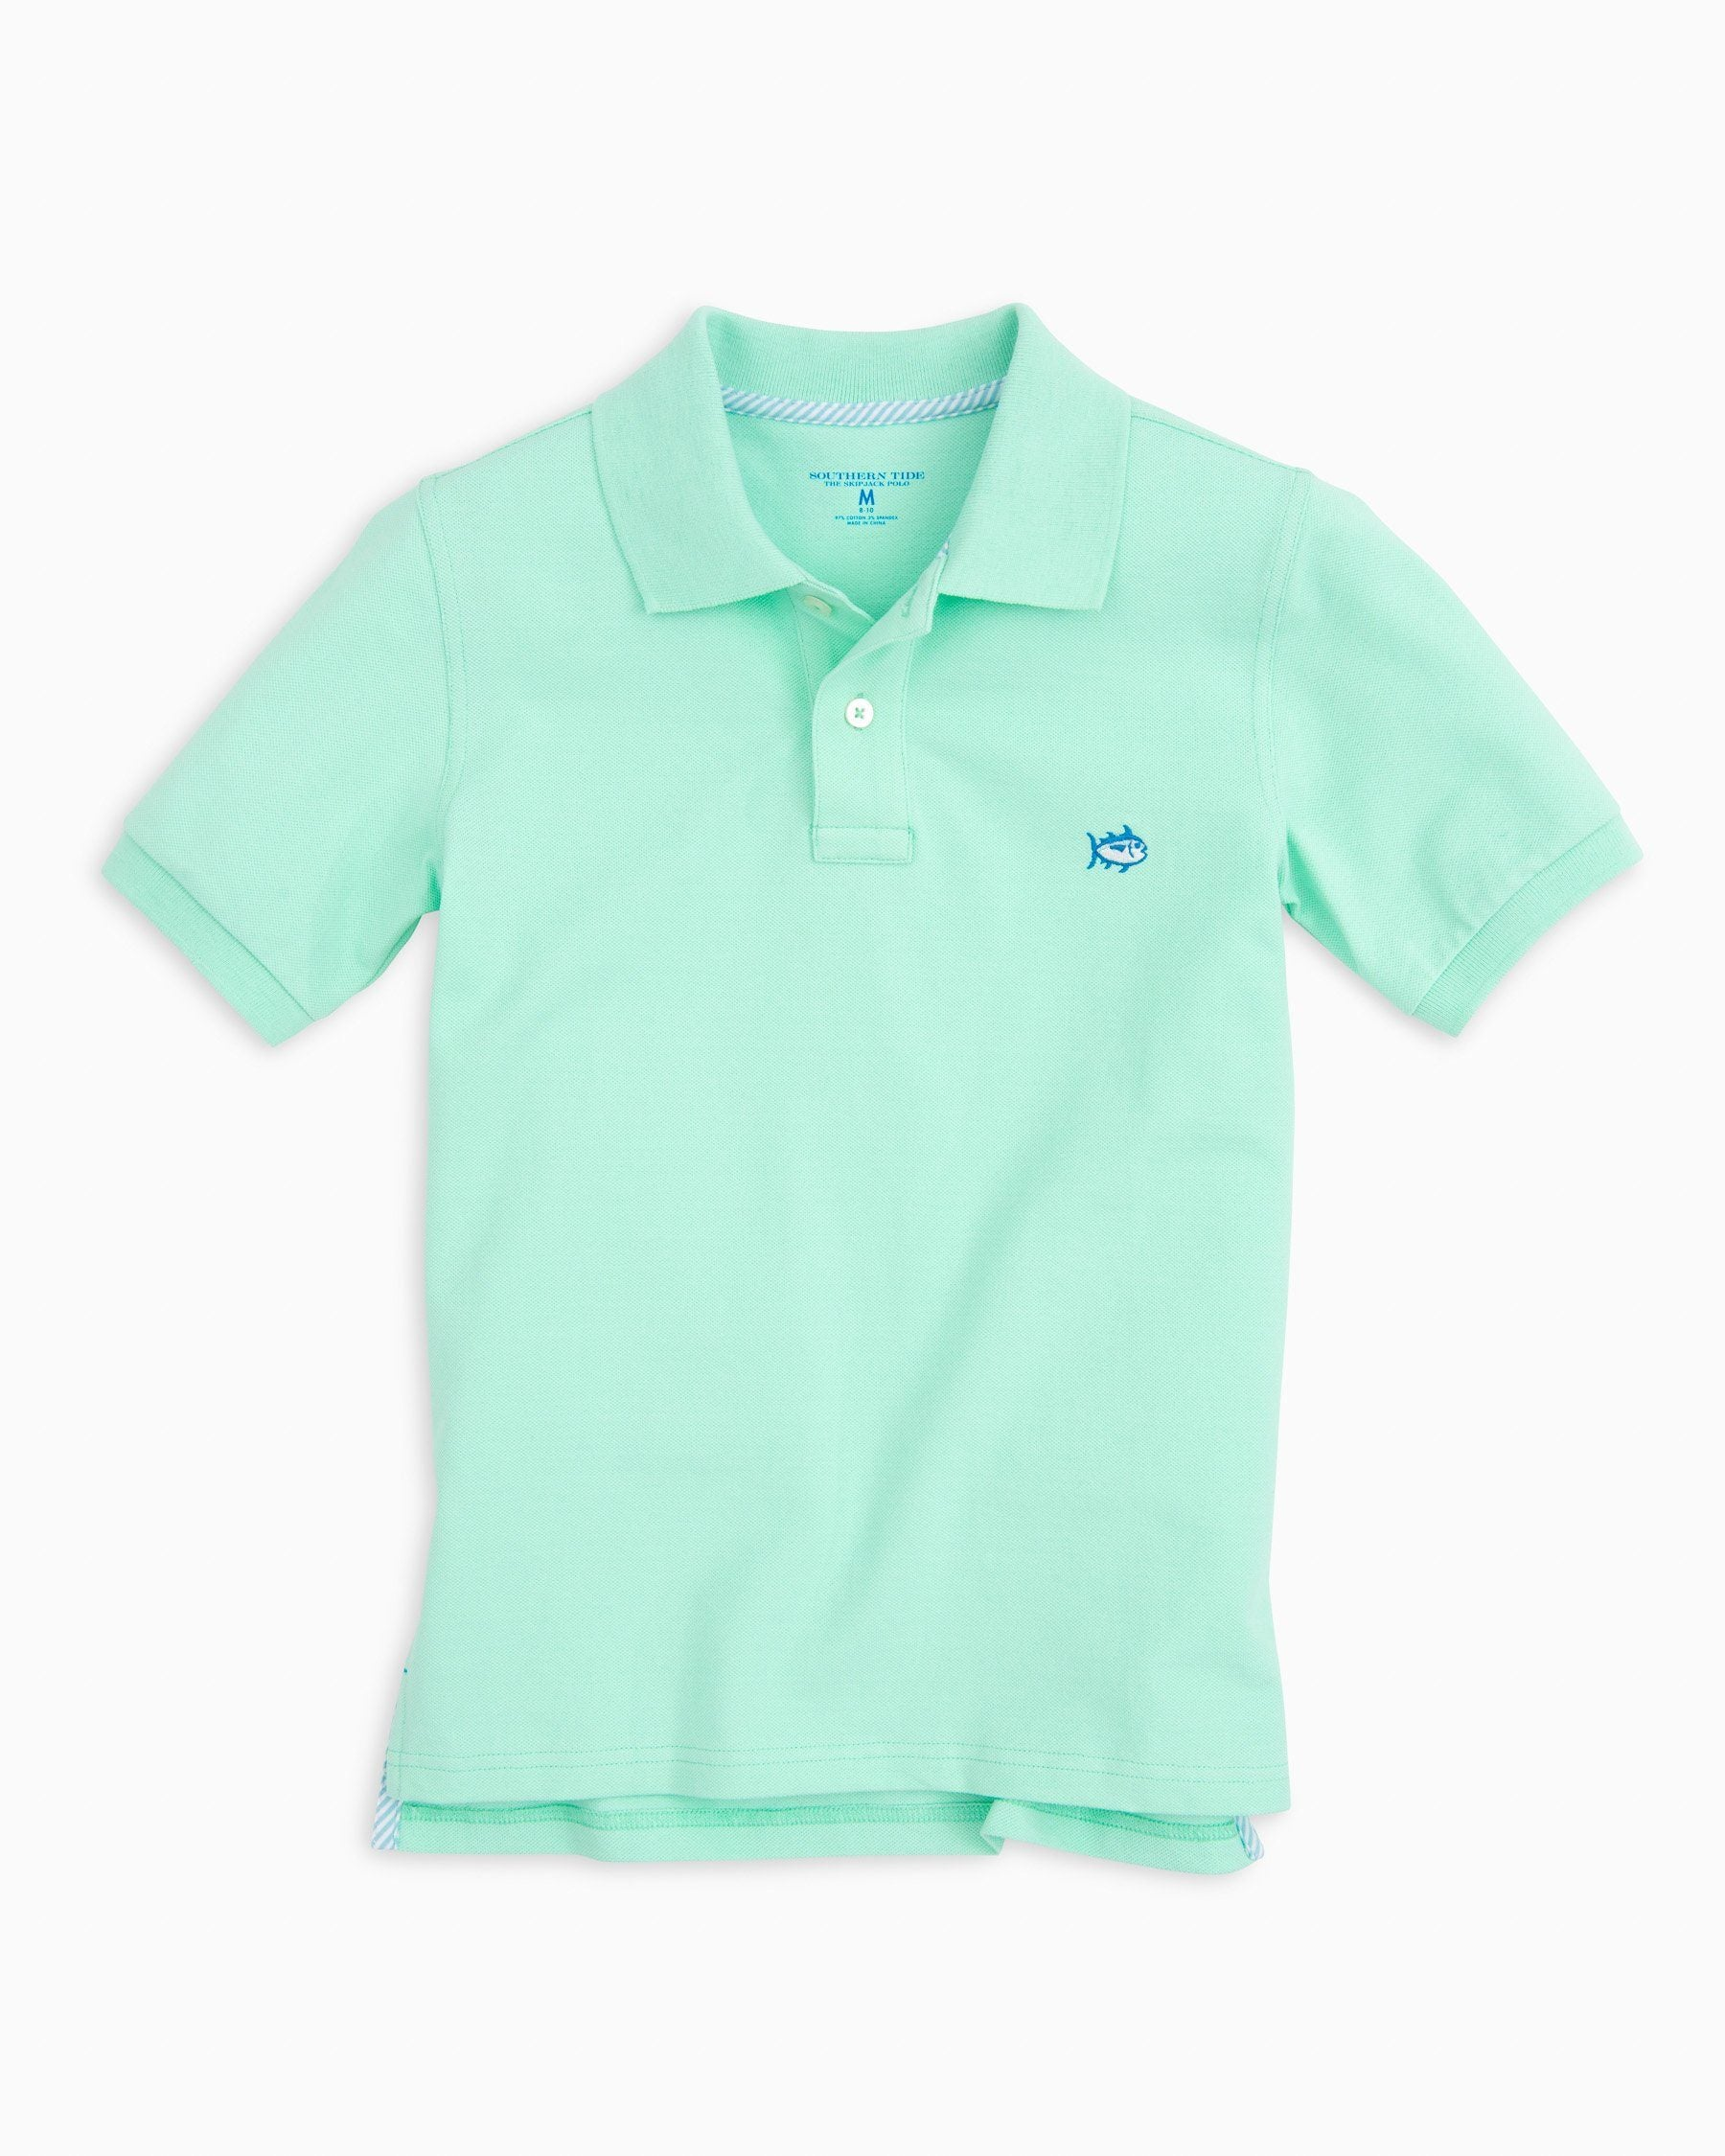 Southern Tide Mens The Skipjack Short Sleeve Polo Shirt Teal Green Size Xl 42 Goods Of Every Description Are Available Shirts